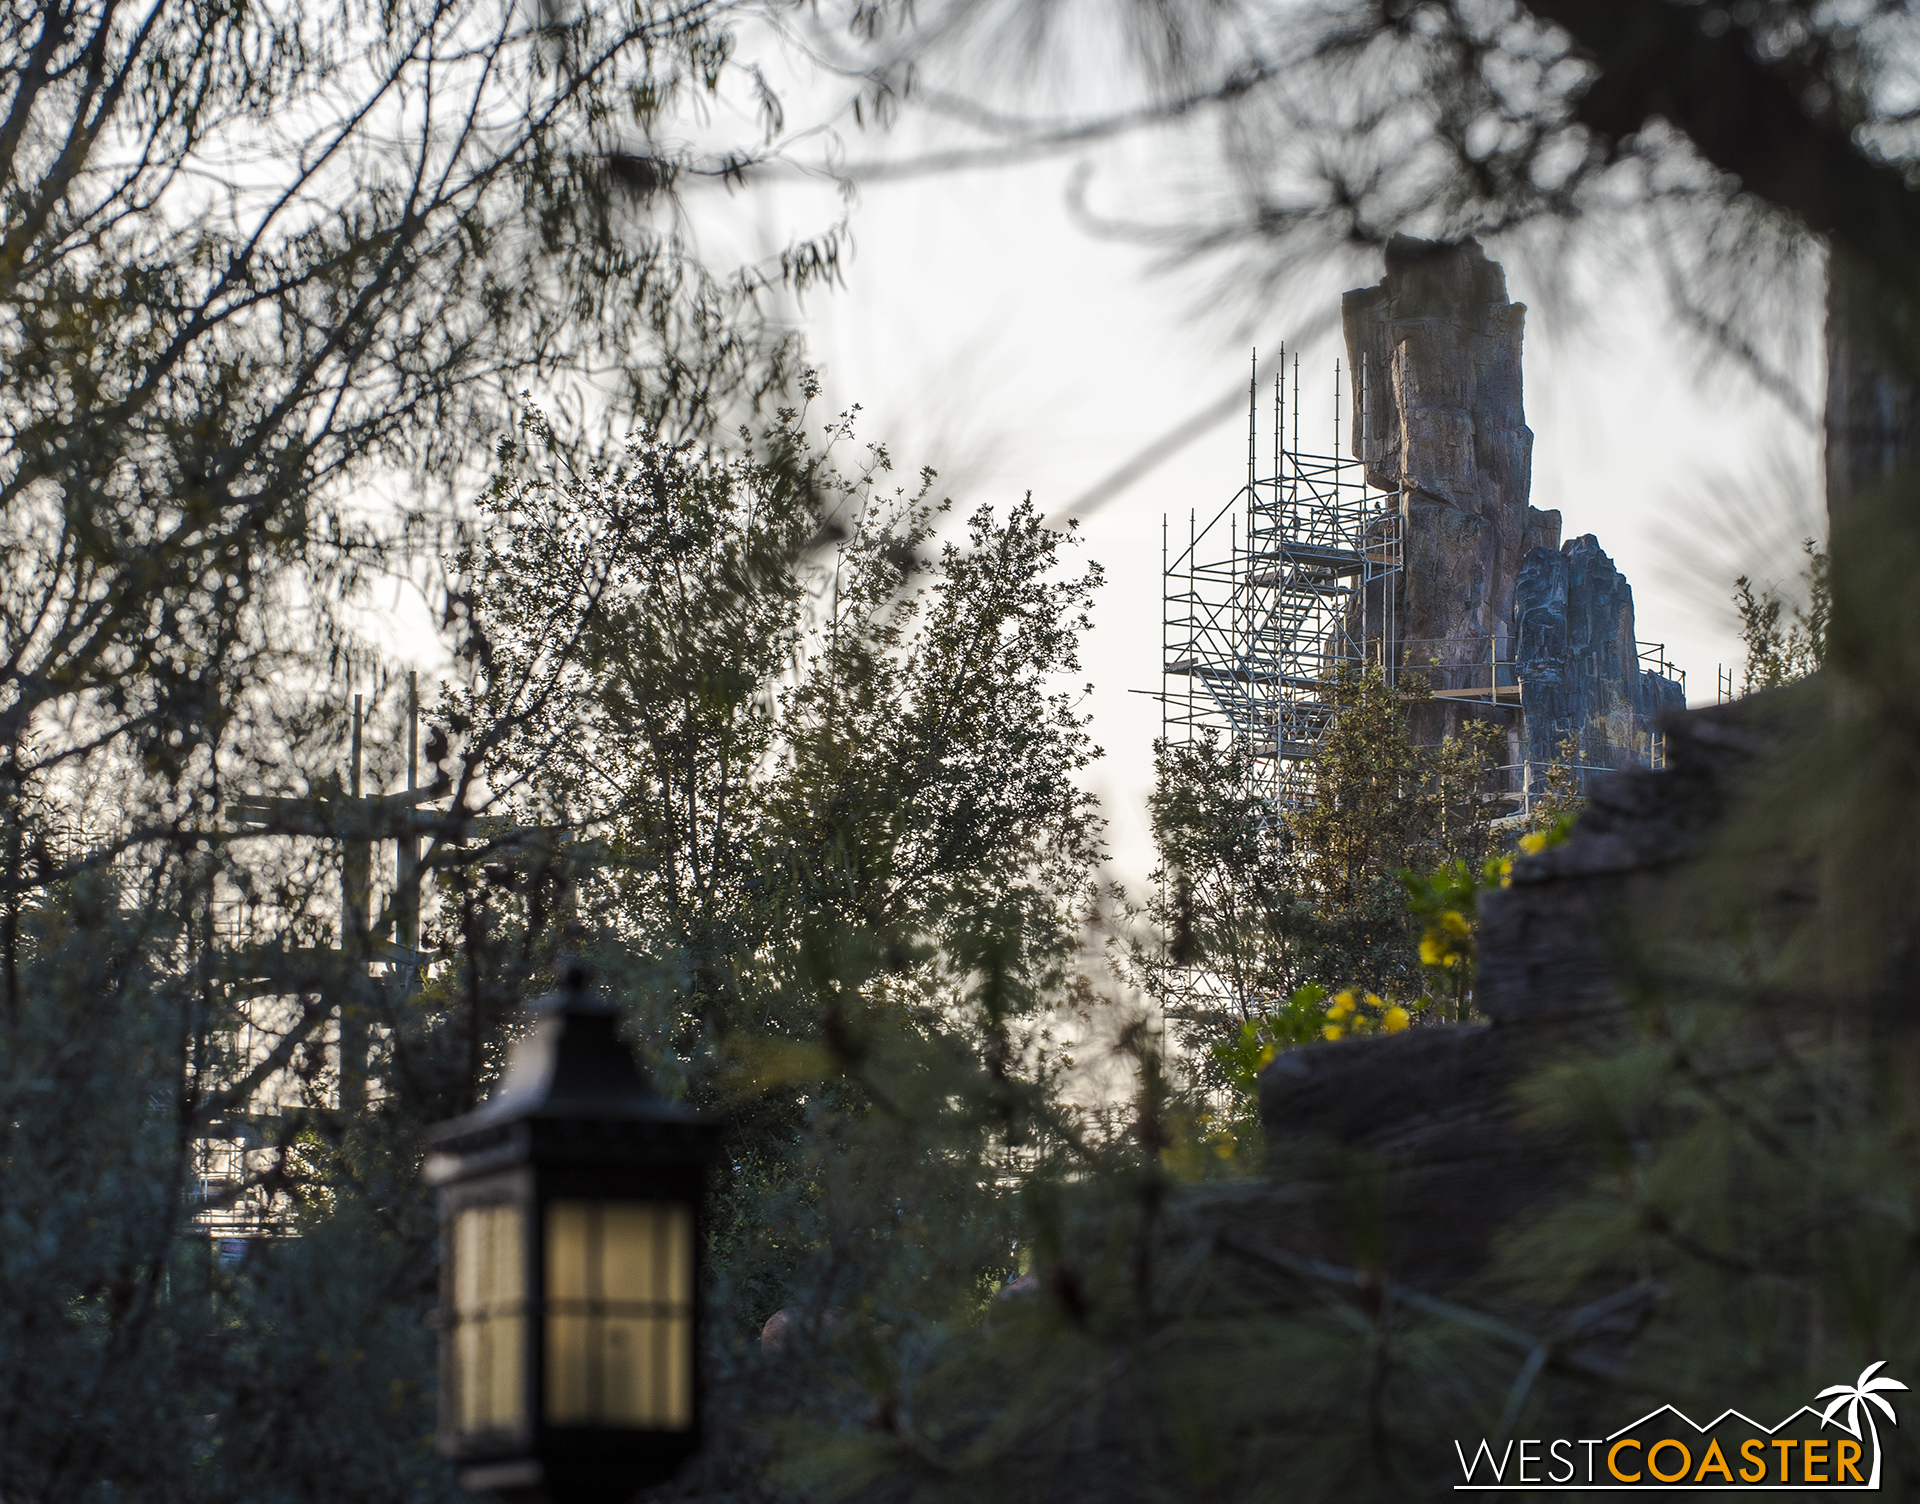 But they peek through over the former Big Thunder Trail.